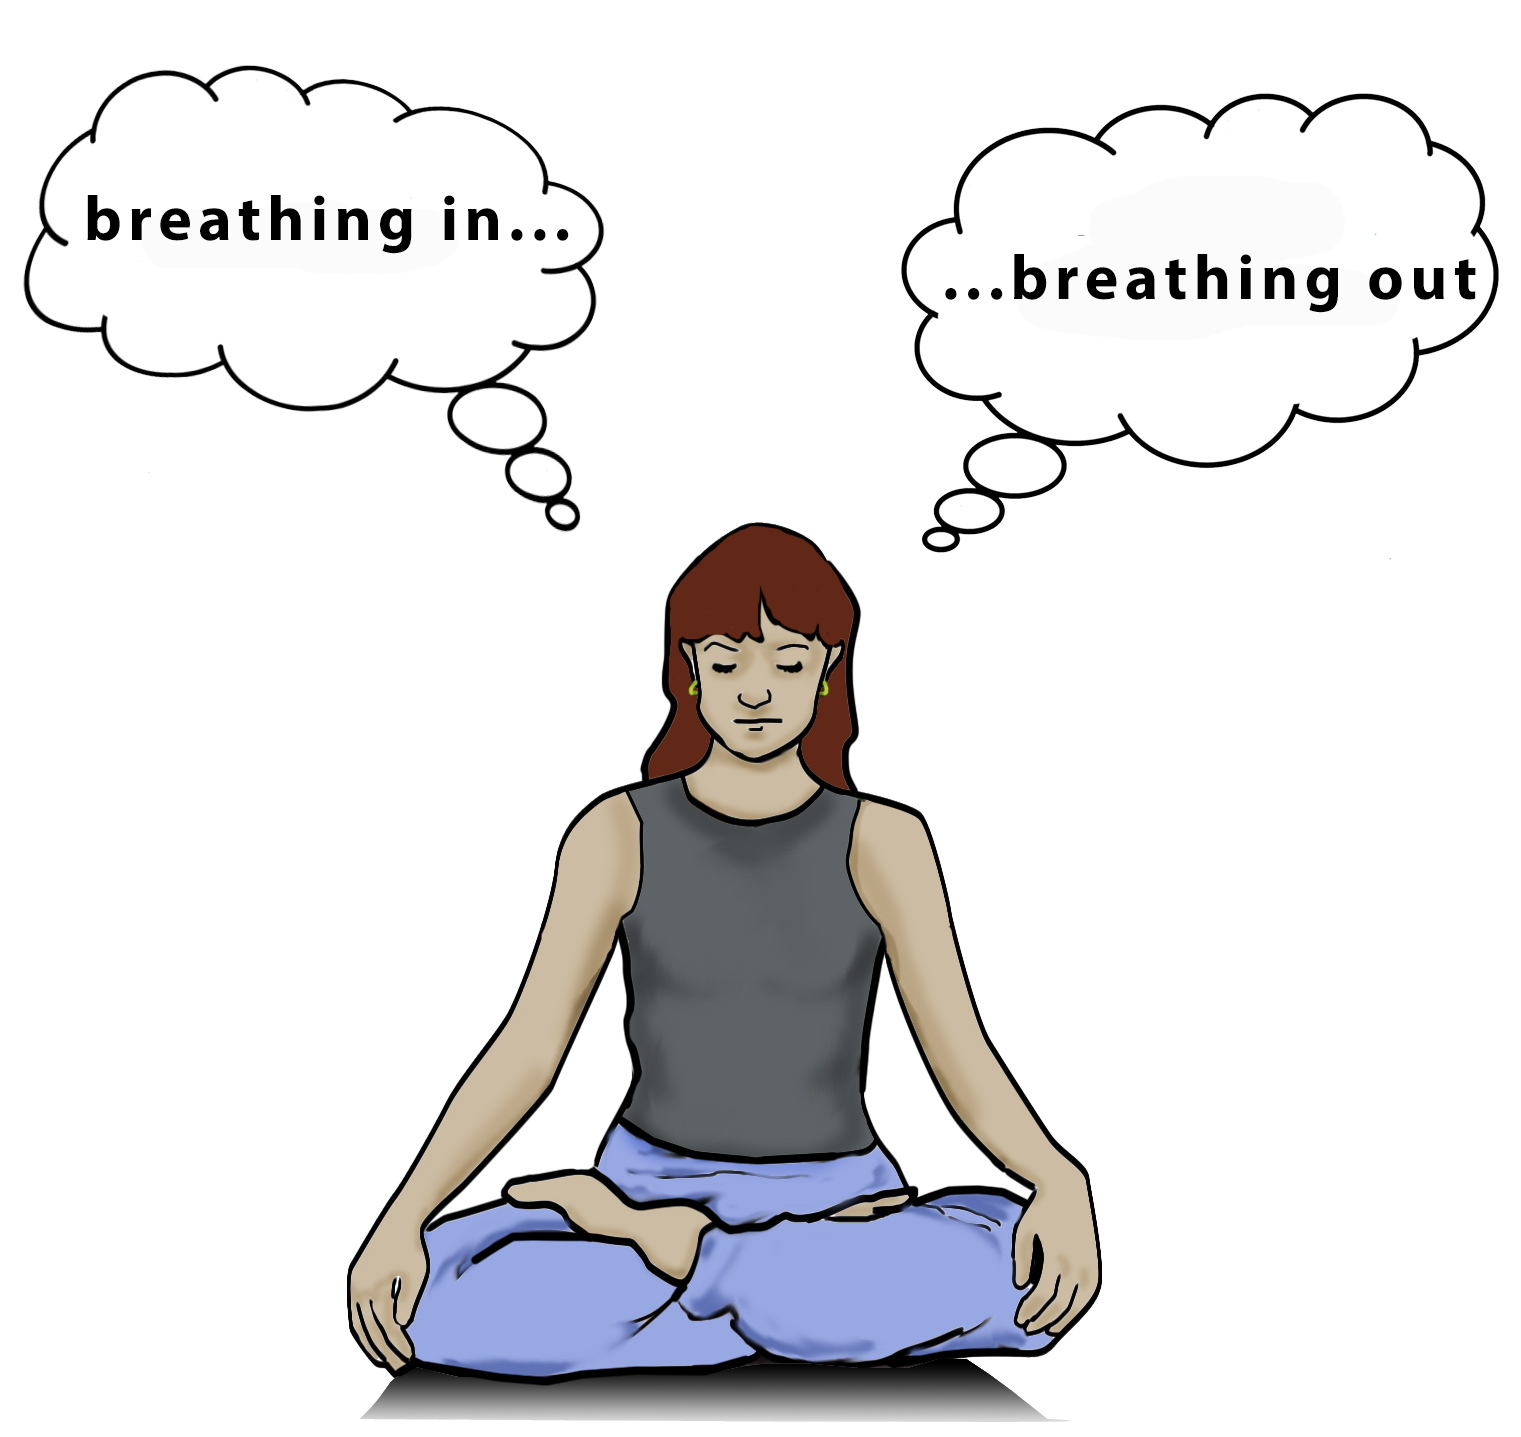 Illustration of a woman meditating, with thought bubble that say breathing in and breathing out